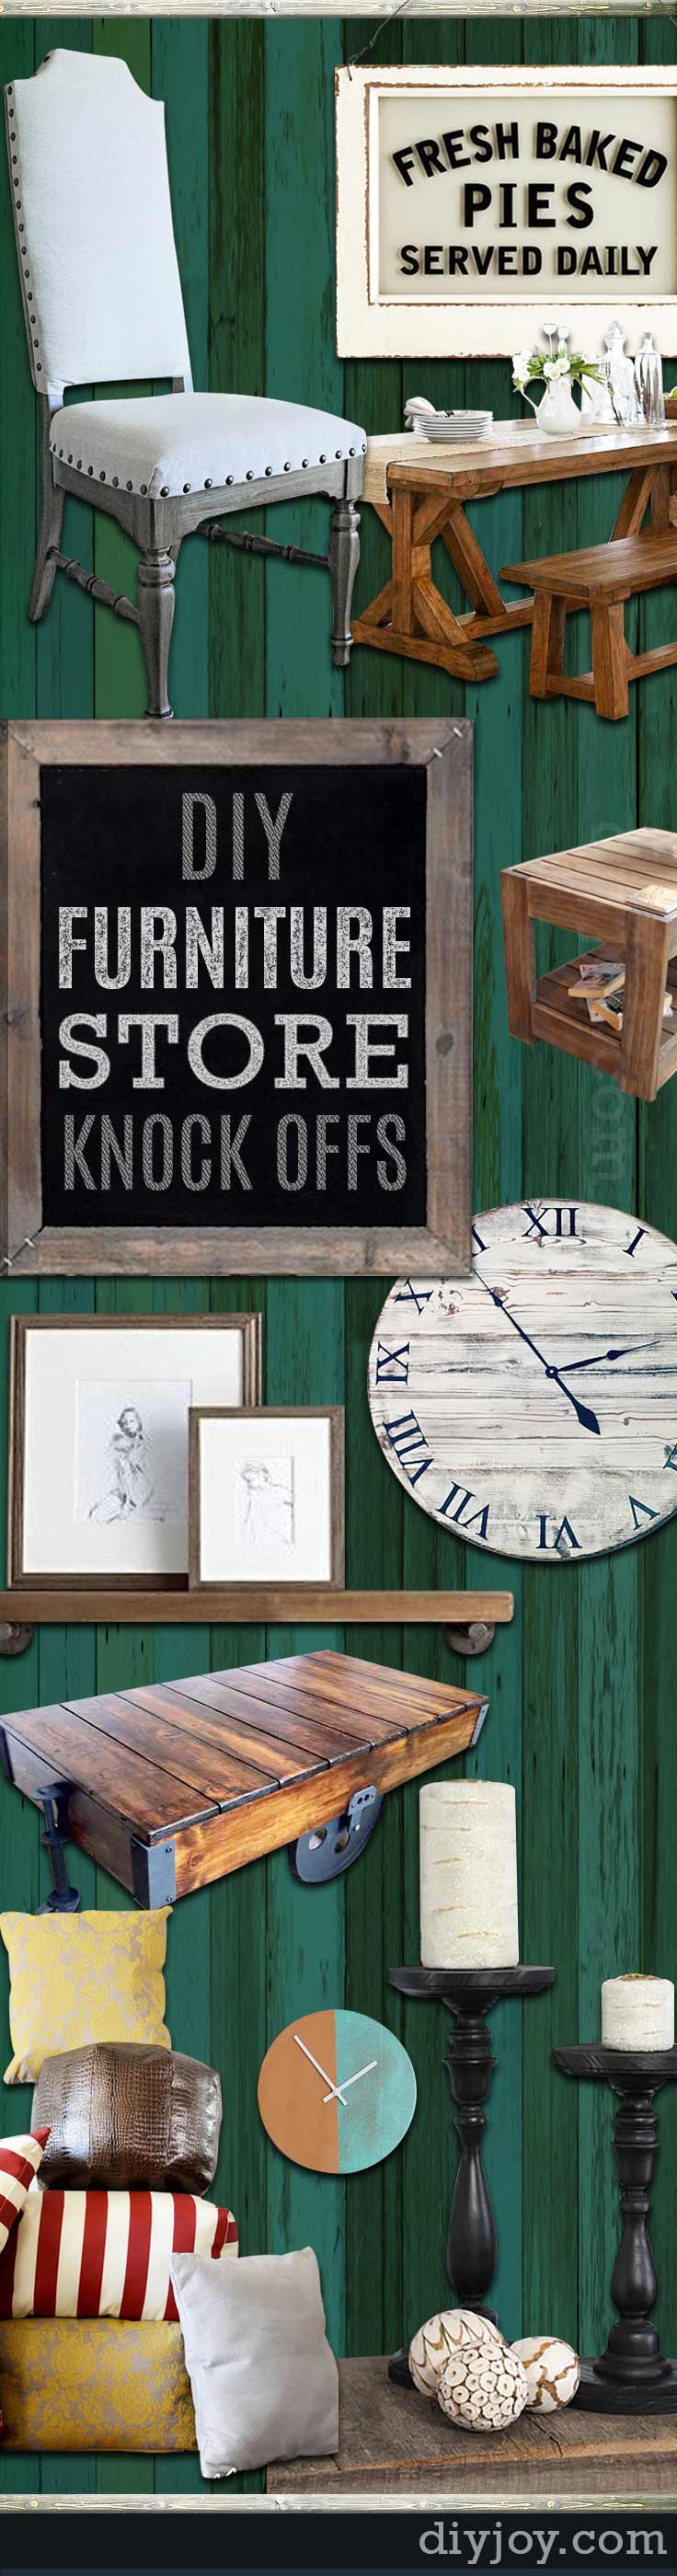 DIY Furniture Store KnockOffs - DYI Designer Furniture Copycats and Dupes - Do It Yourself Furniture Projects Inspired by Pottery Barn, Restoration Hardware, West Elm. Tutorials and Step by Step Instructions